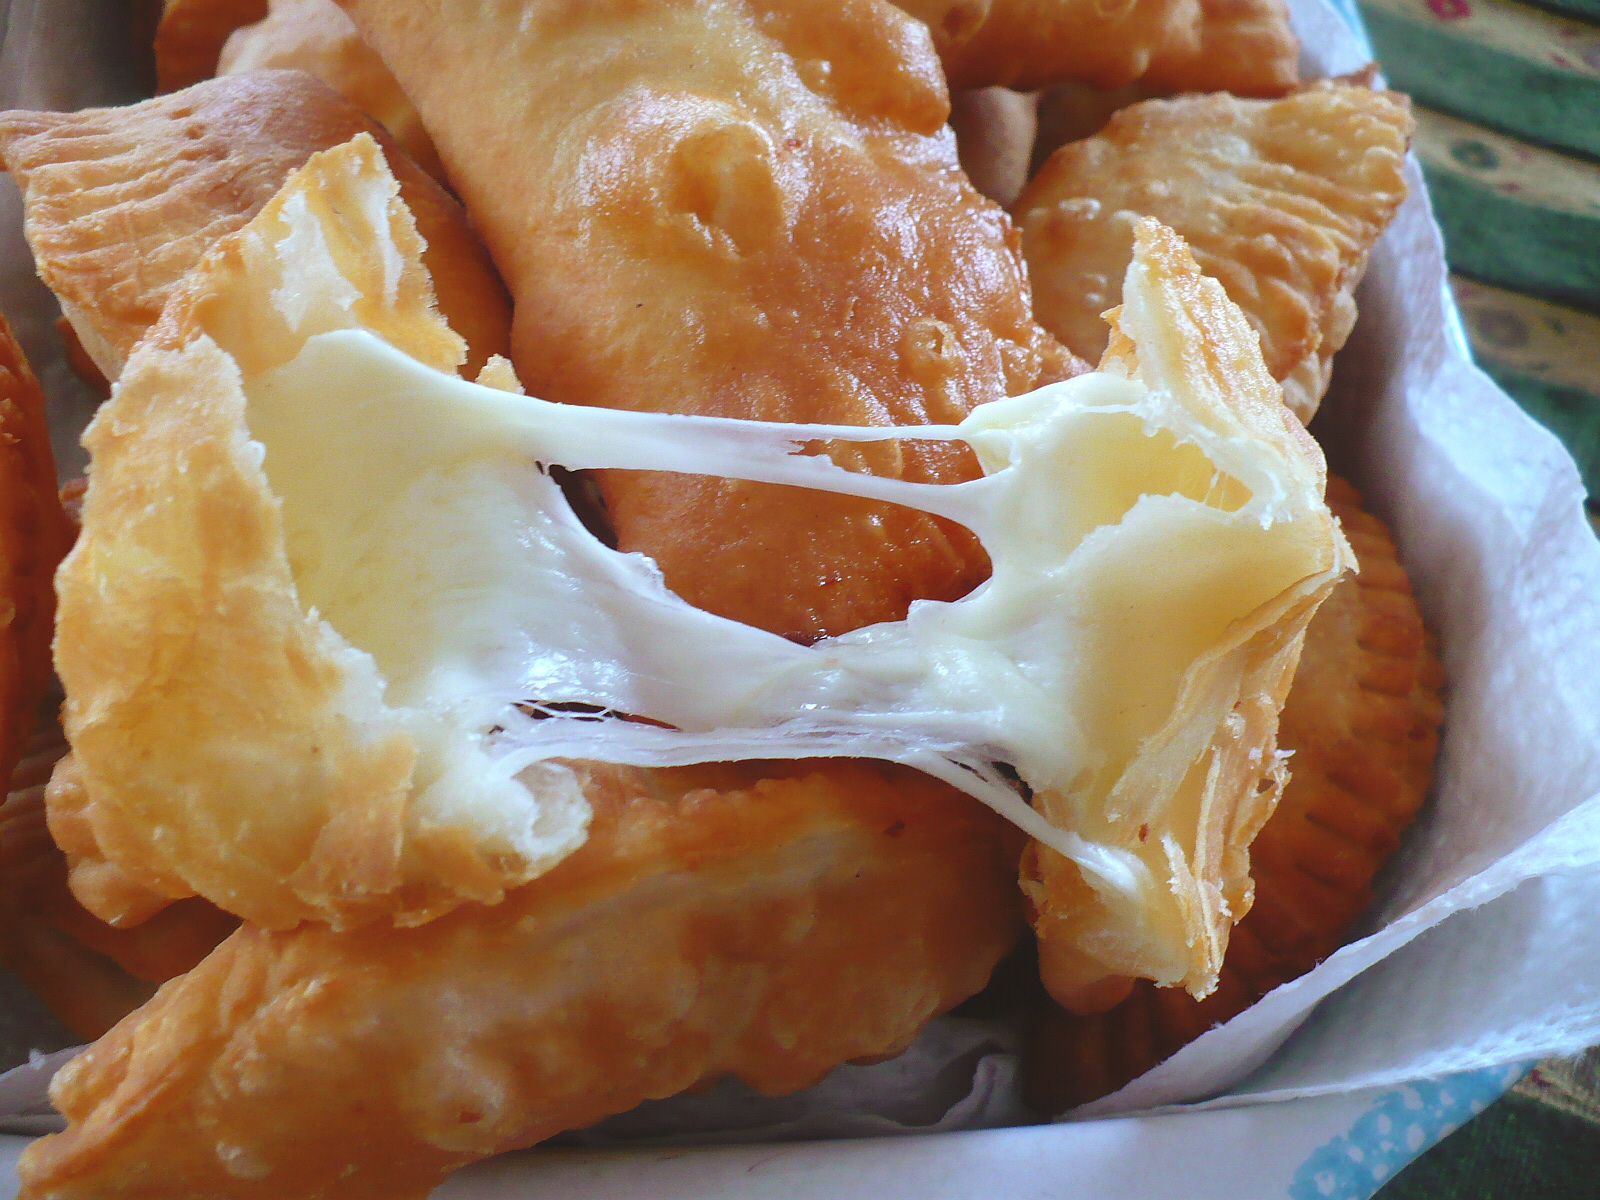 Empanadas  - These fried or baked dough pastries are usually filled with either cheese, seafood or a mixture called  pino , that consists of ground beef, olive, egg and onion. Our personal favorite was simply: cheese, shrimp (prawns) and Chilean hot sauce! Yum!